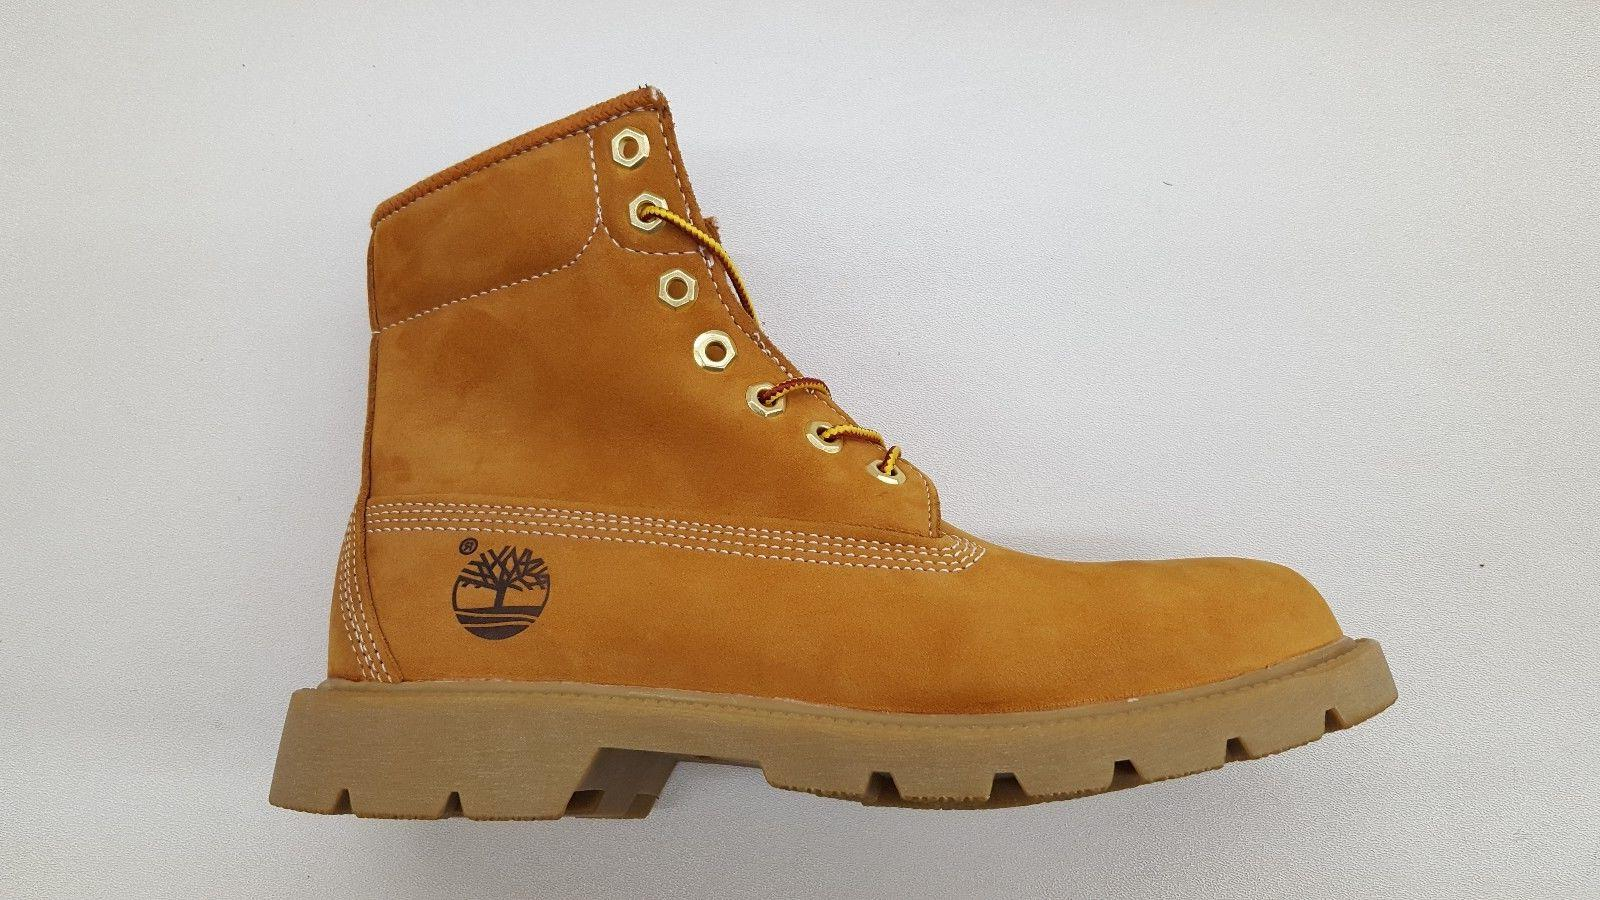 6 inch basic single sole wheat nubuck